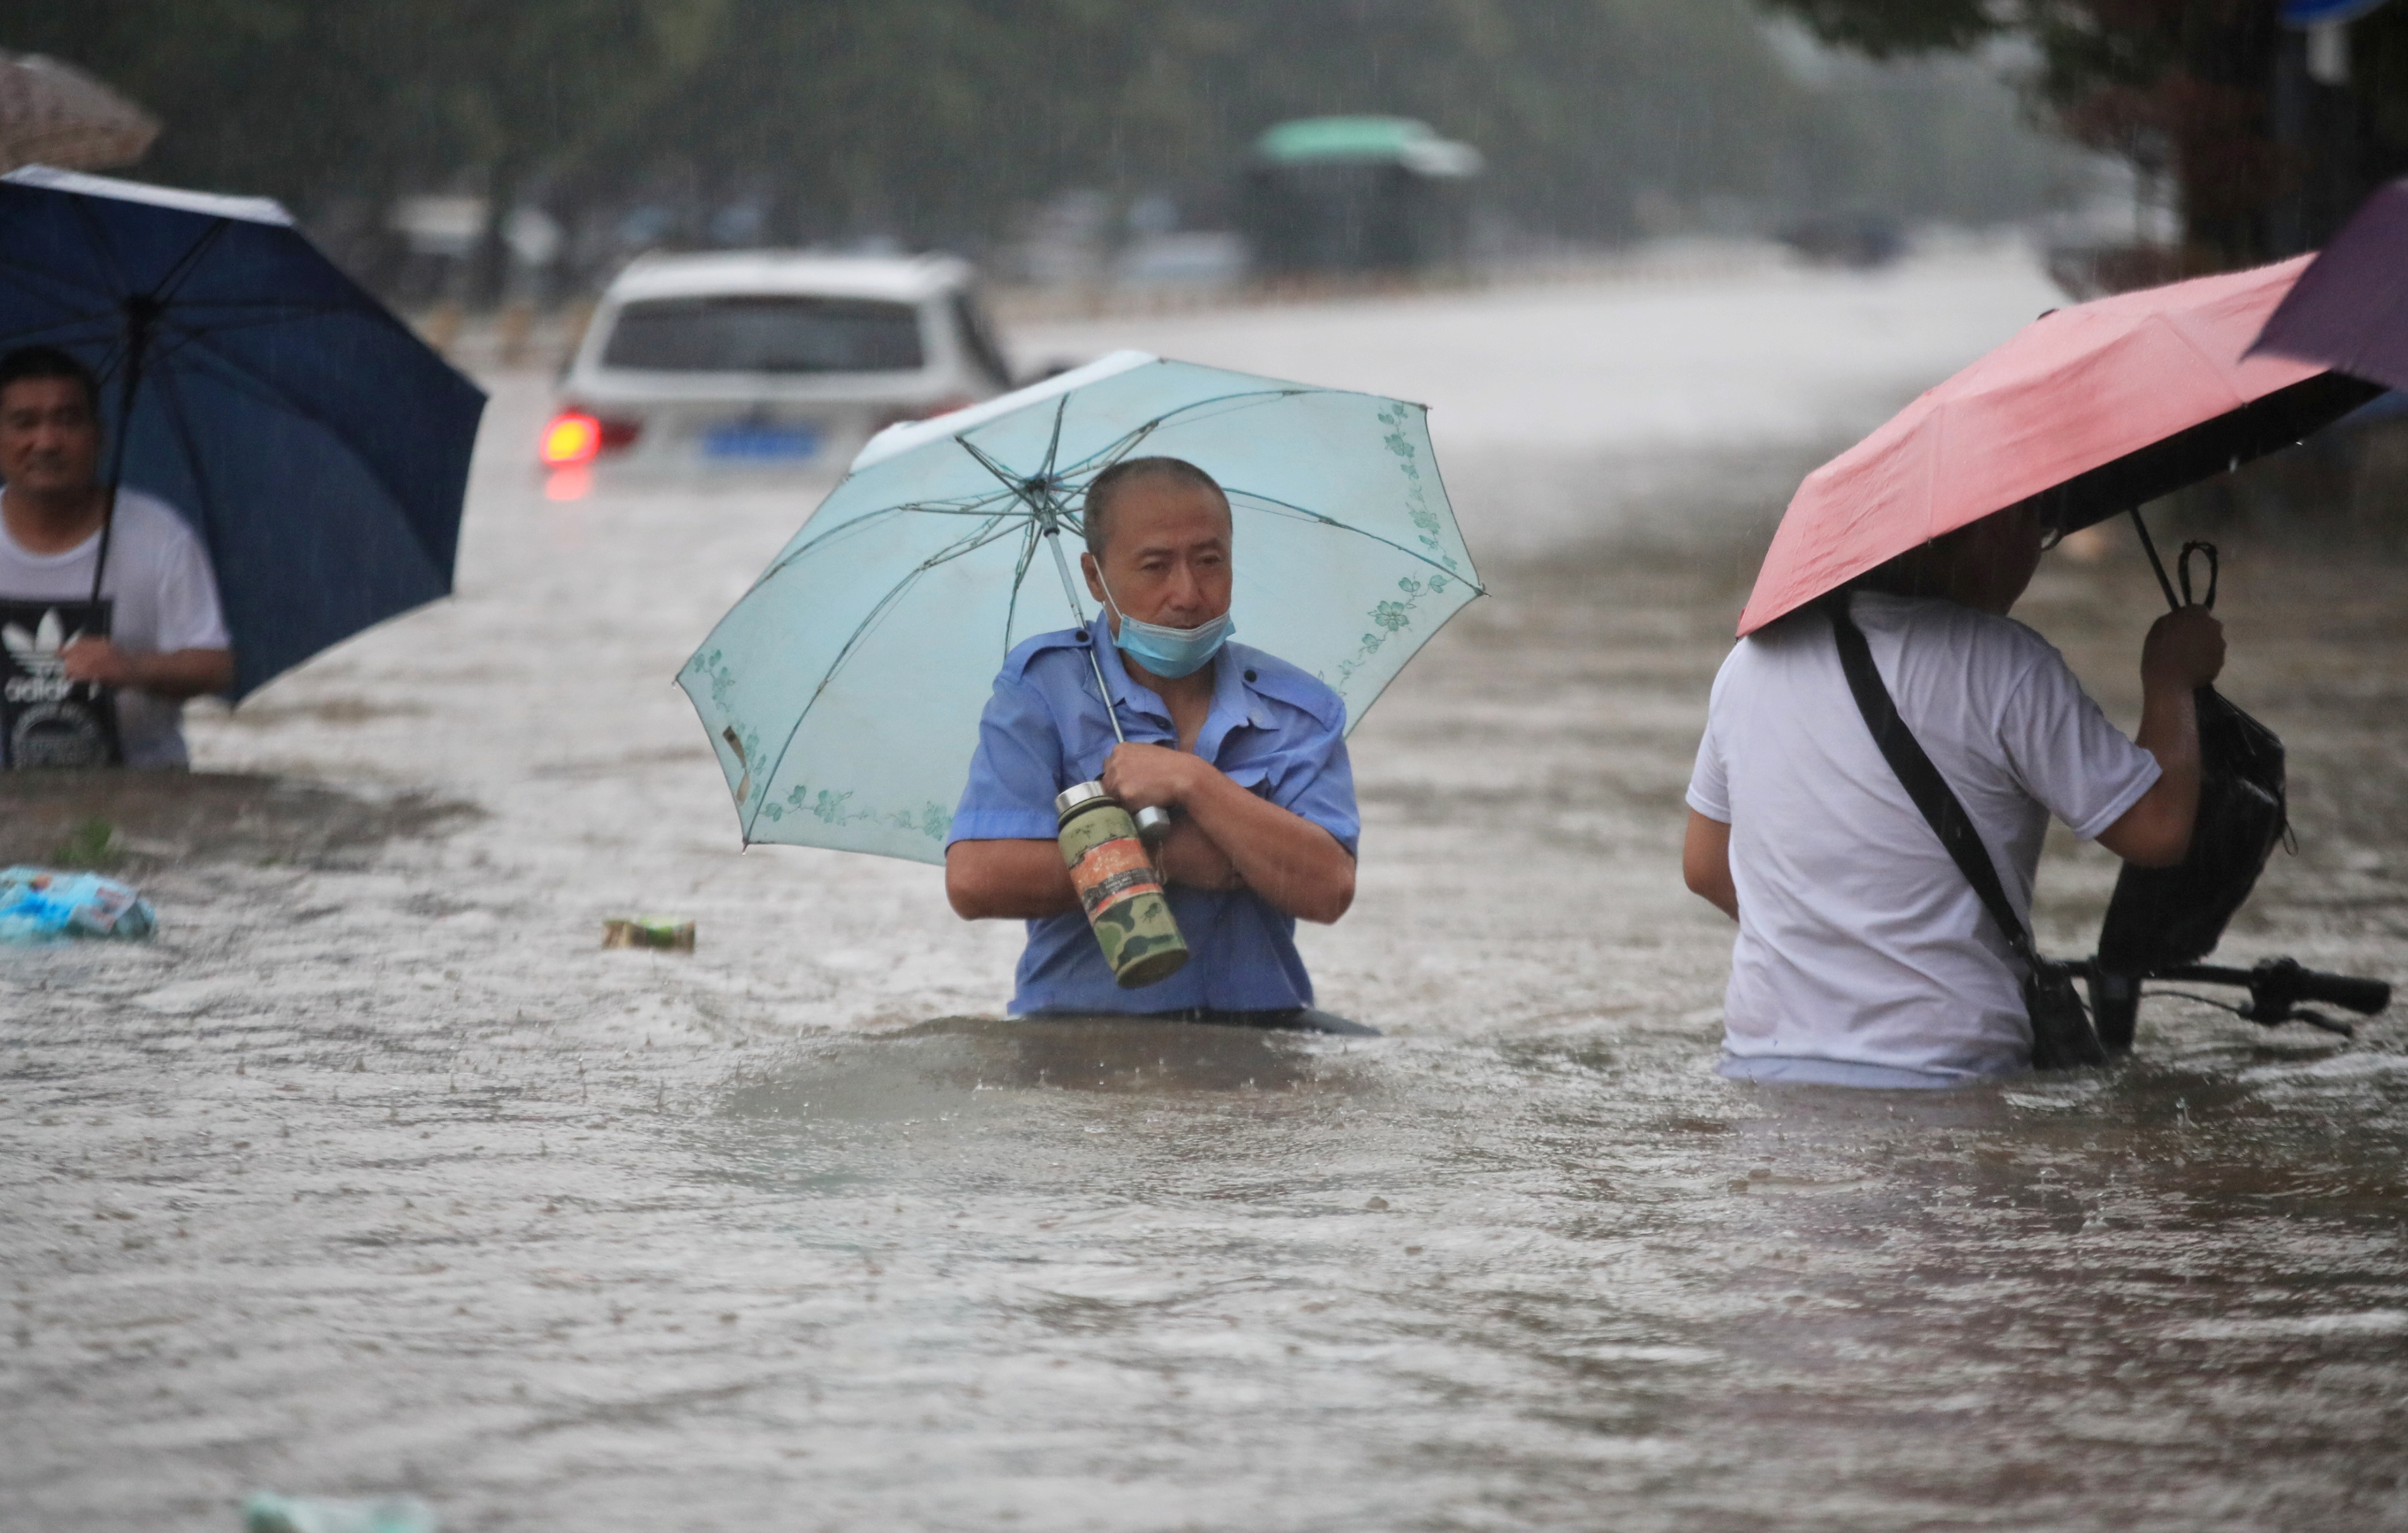 Residents wade through floodwaters on a flooded road amid heavy rainfall in Zhengzhou, Henan province, China July 20, 2021. Picture taken July 20, 2021. China Daily via REUTERS  ATTENTION EDITORS - THIS IMAGE WAS PROVIDED BY A THIRD PARTY. CHINA OUT.